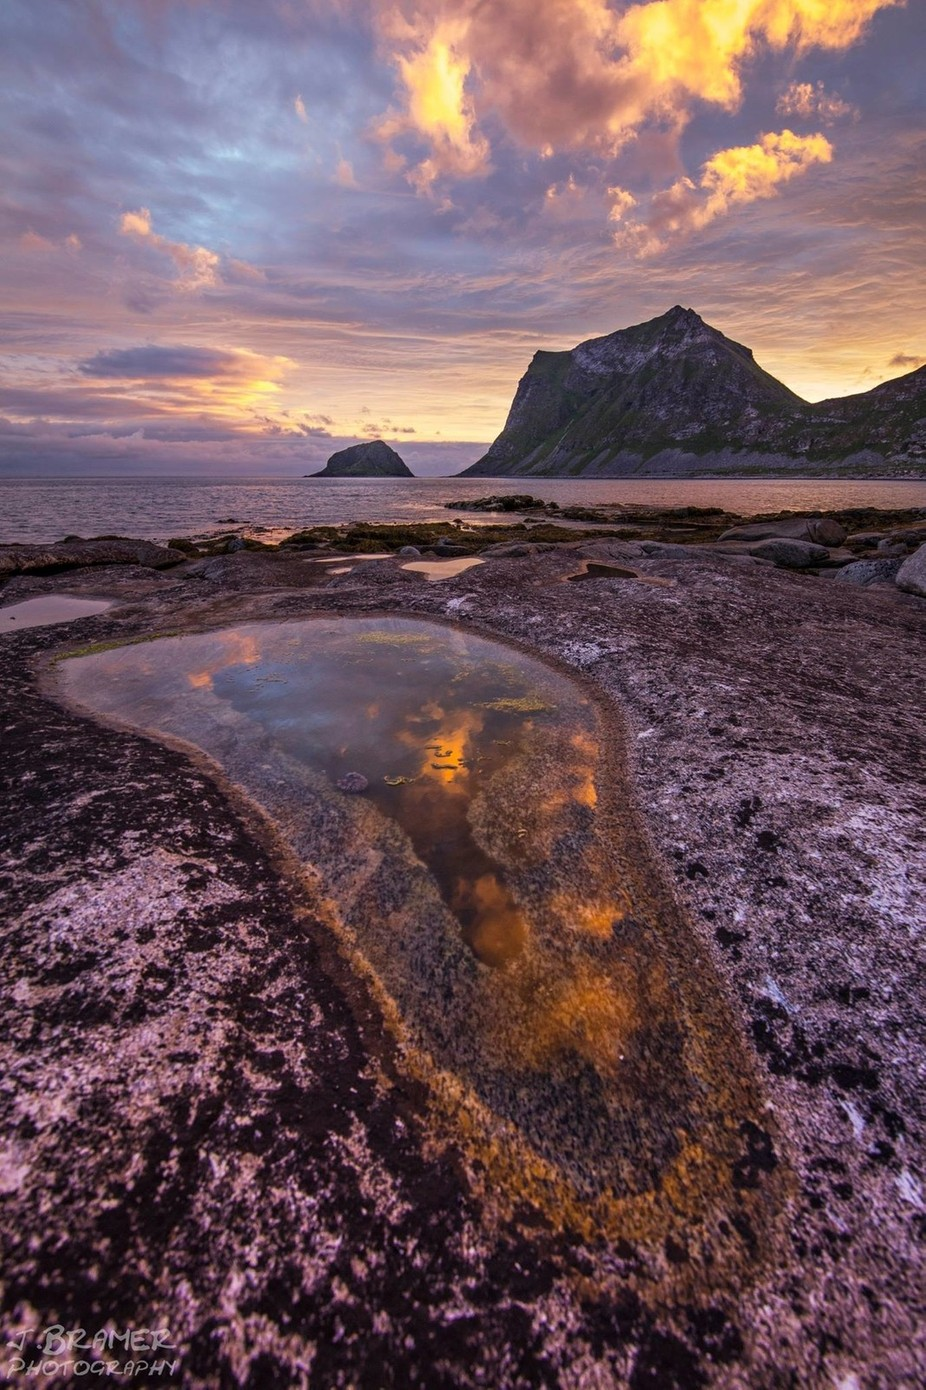 Magical Midnightsun - Lofoten by JBramerPhotography - Monthly Pro Vol 35 Photo Contest